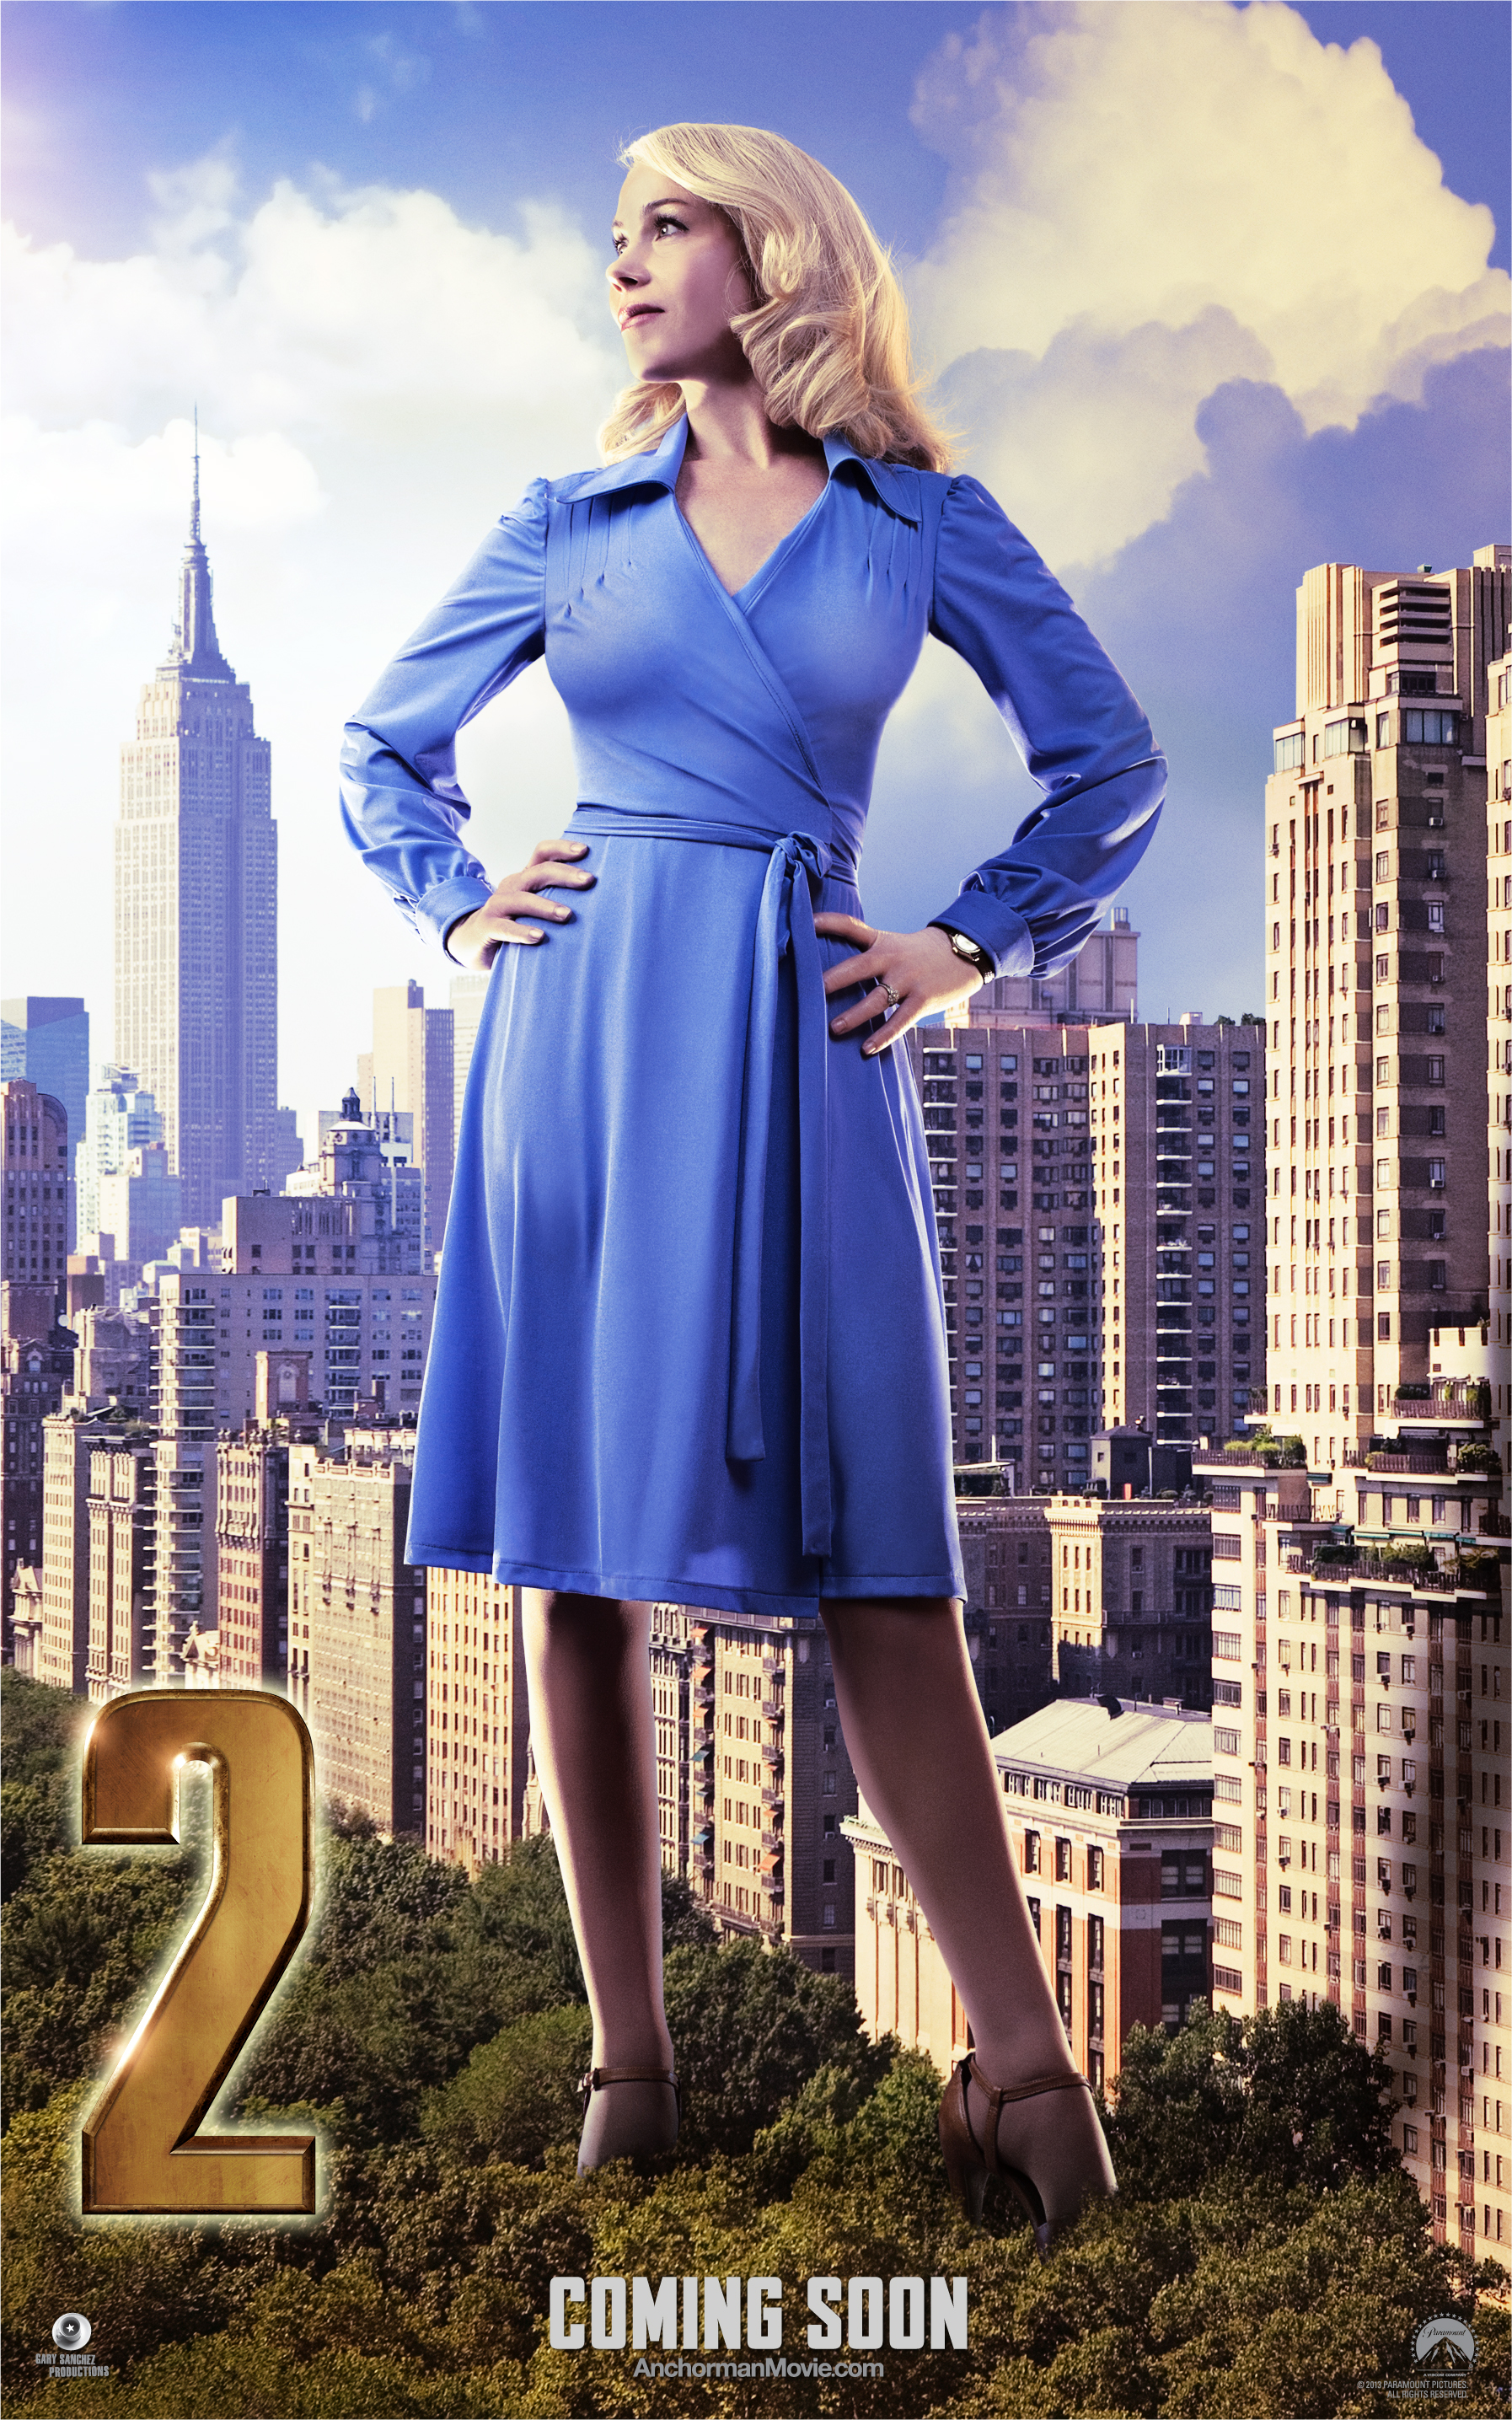 Exclusive: Veronica Corningstone gets her own statuesque Anchorman 2 poster